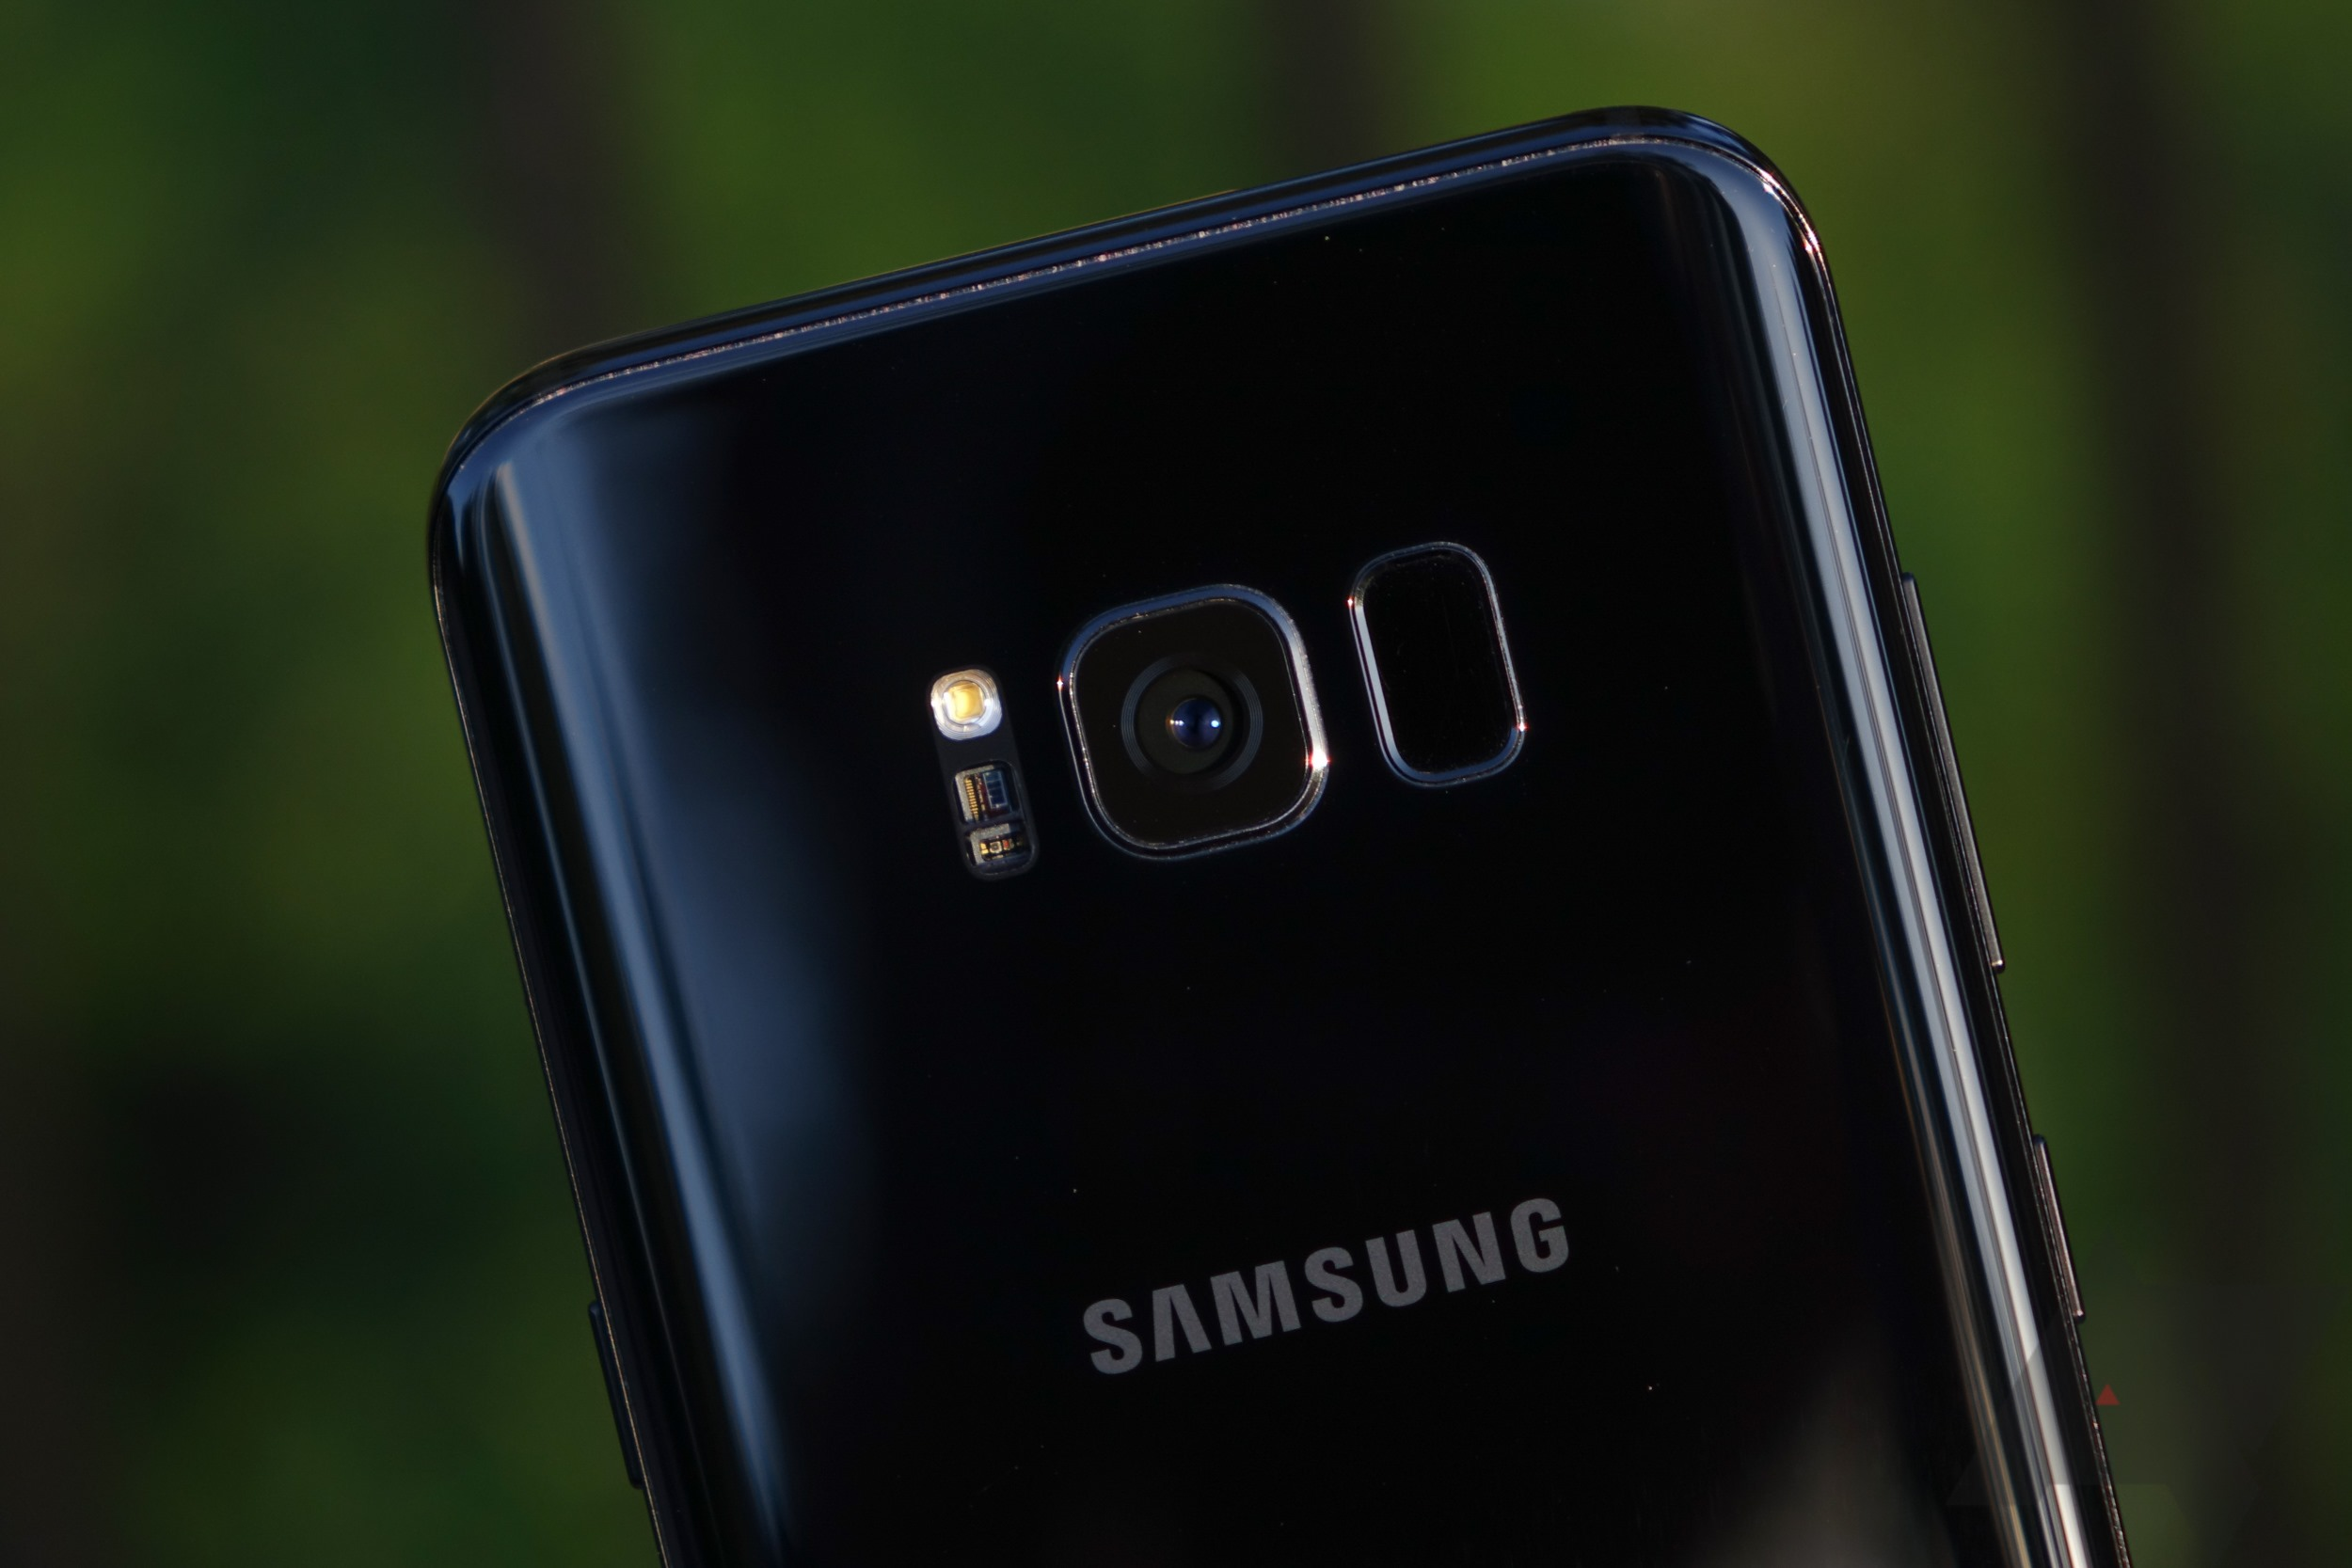 Android 8 0 Oreo update released for Sprint Galaxy S8 and S8+